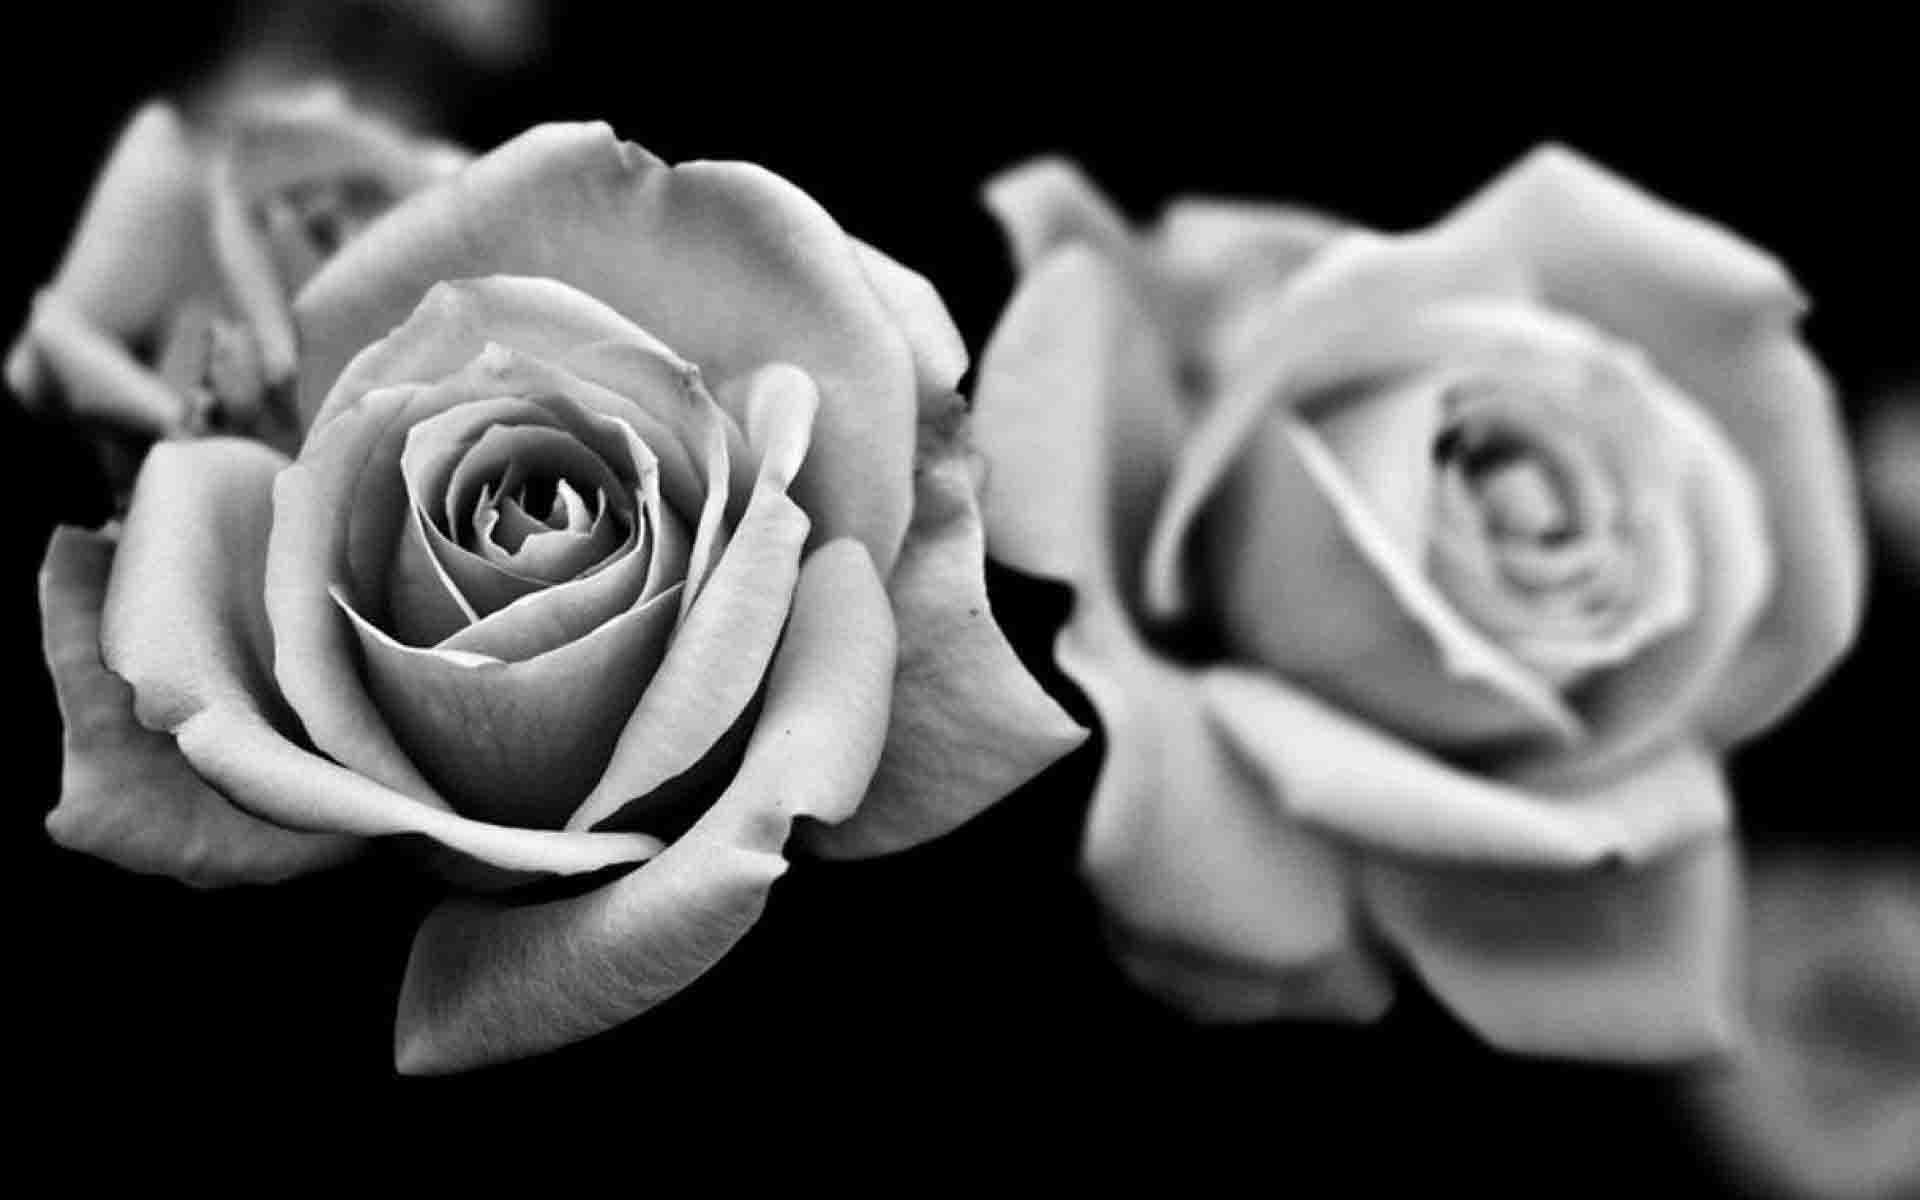 rose roses desktop wallpapers wallpapersafari flower